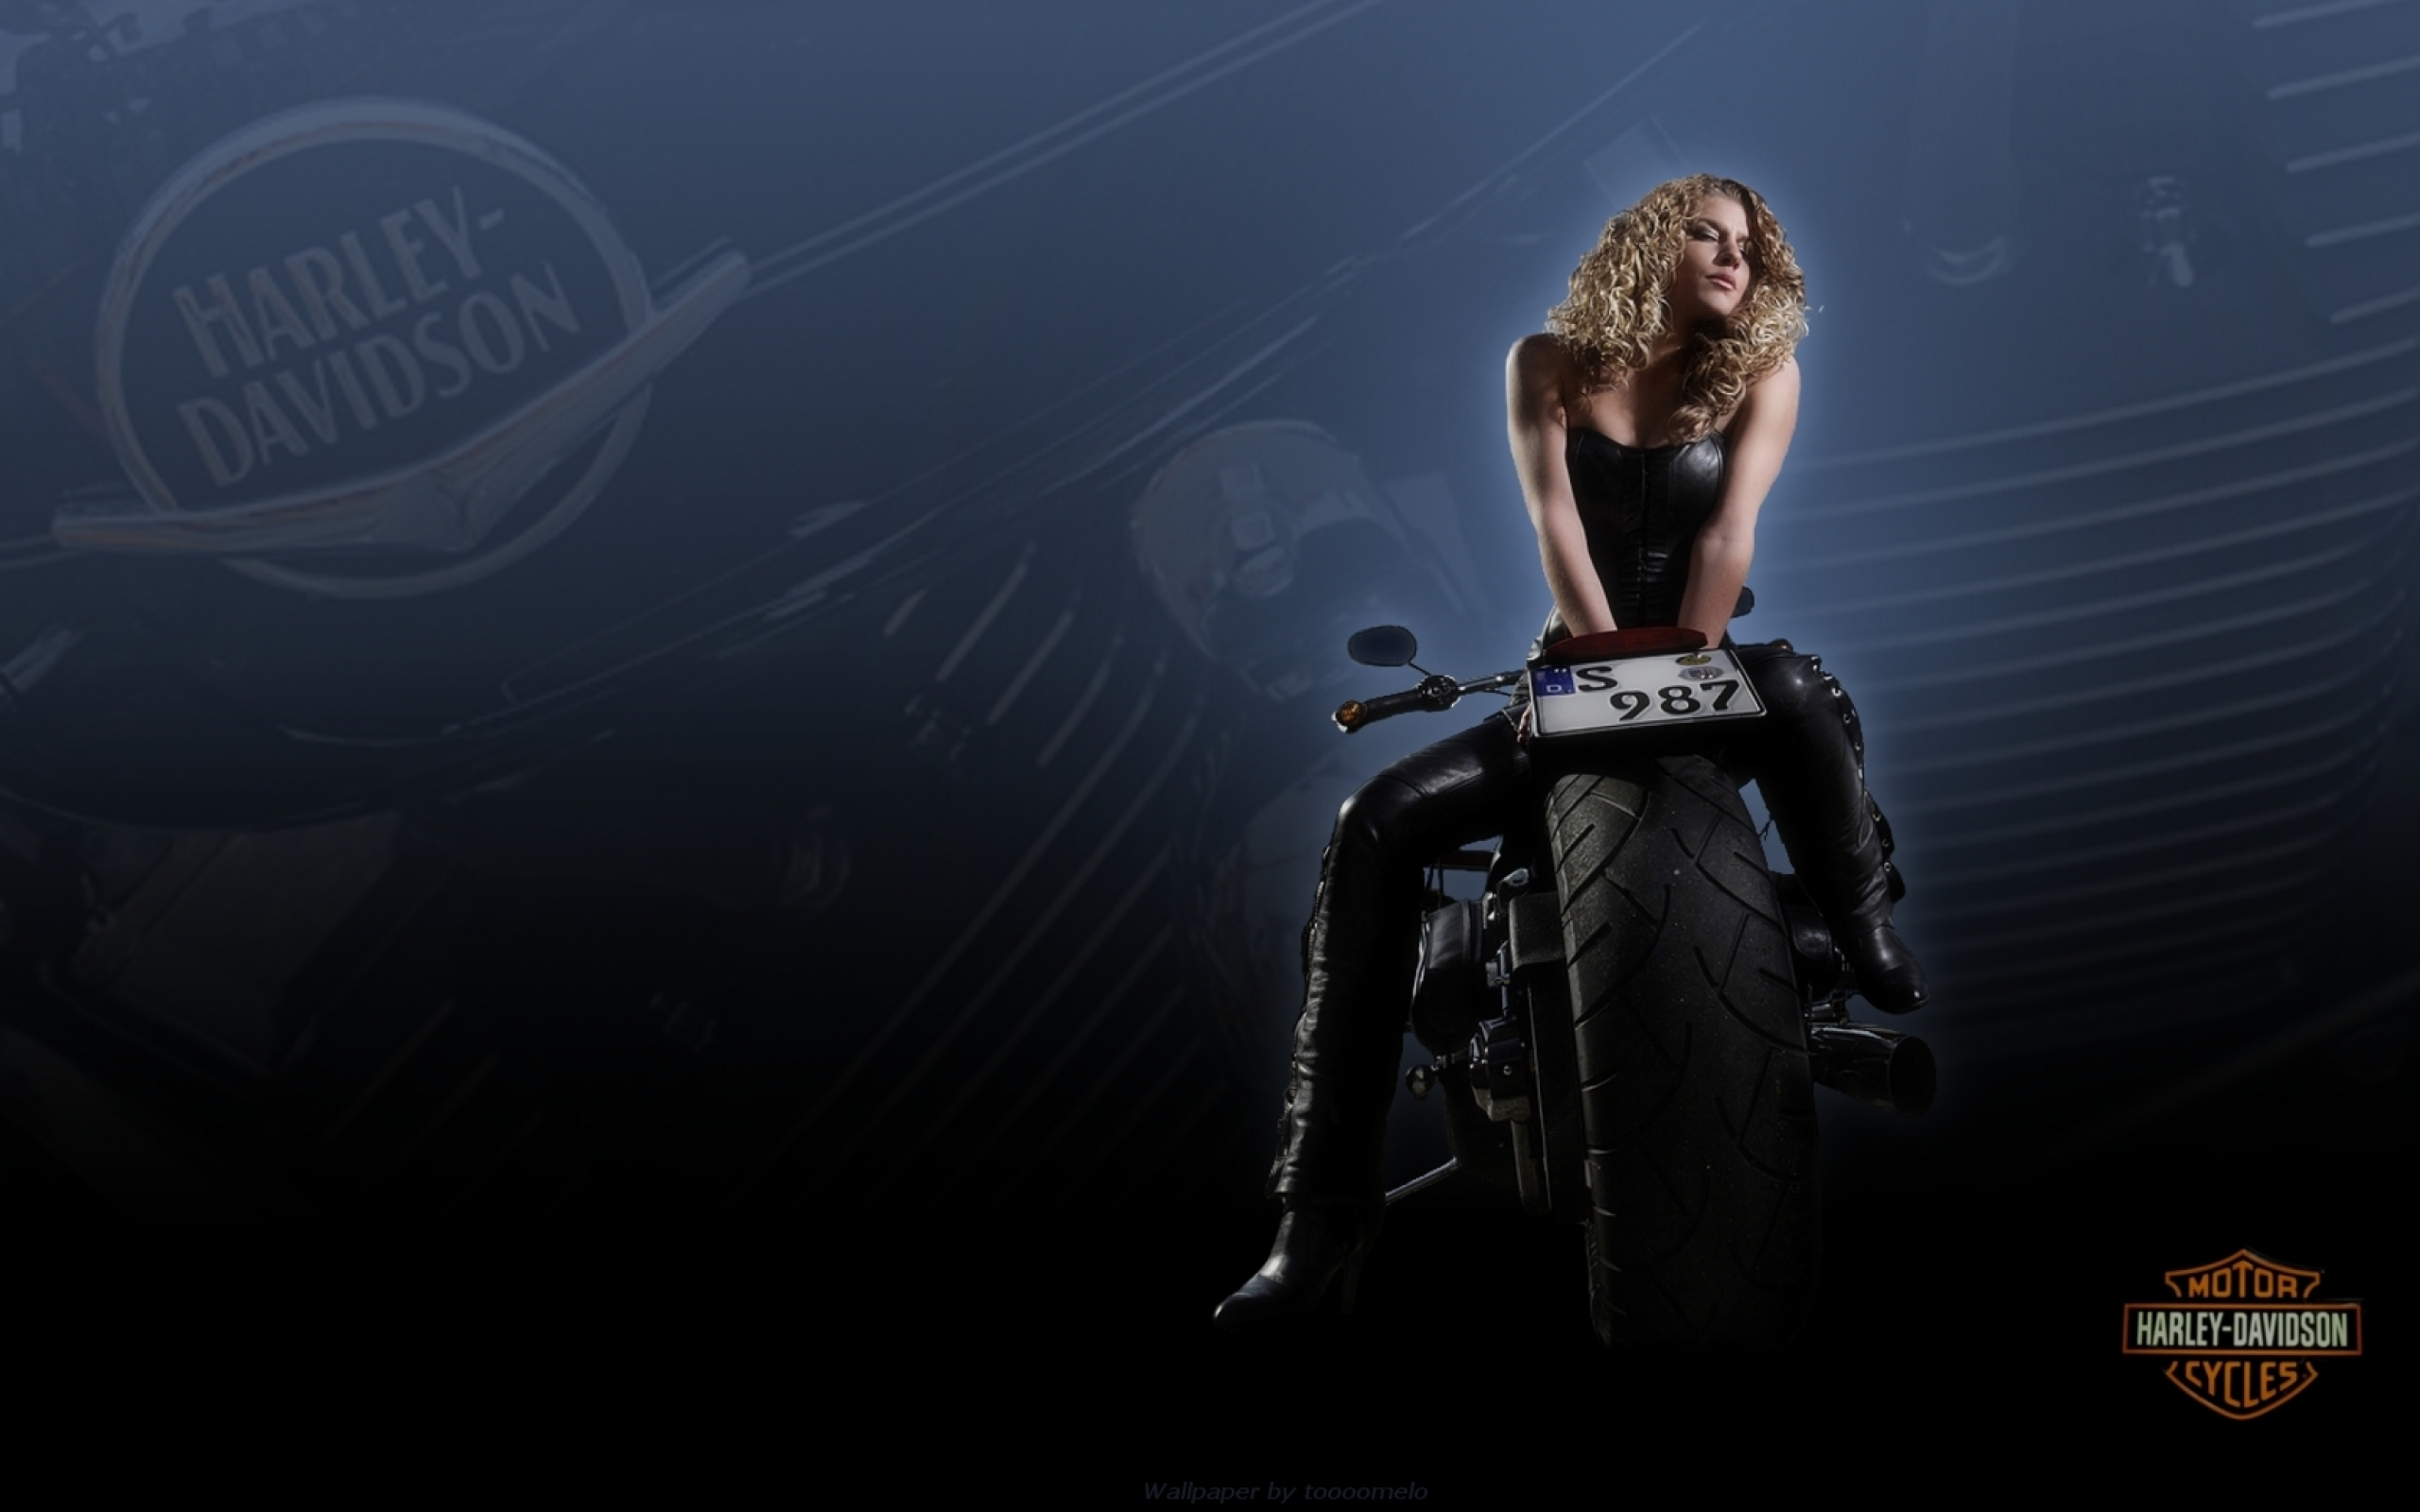 20900 download wallpaper Transport, Brands, People, Girls, Motorcycles screensavers and pictures for free